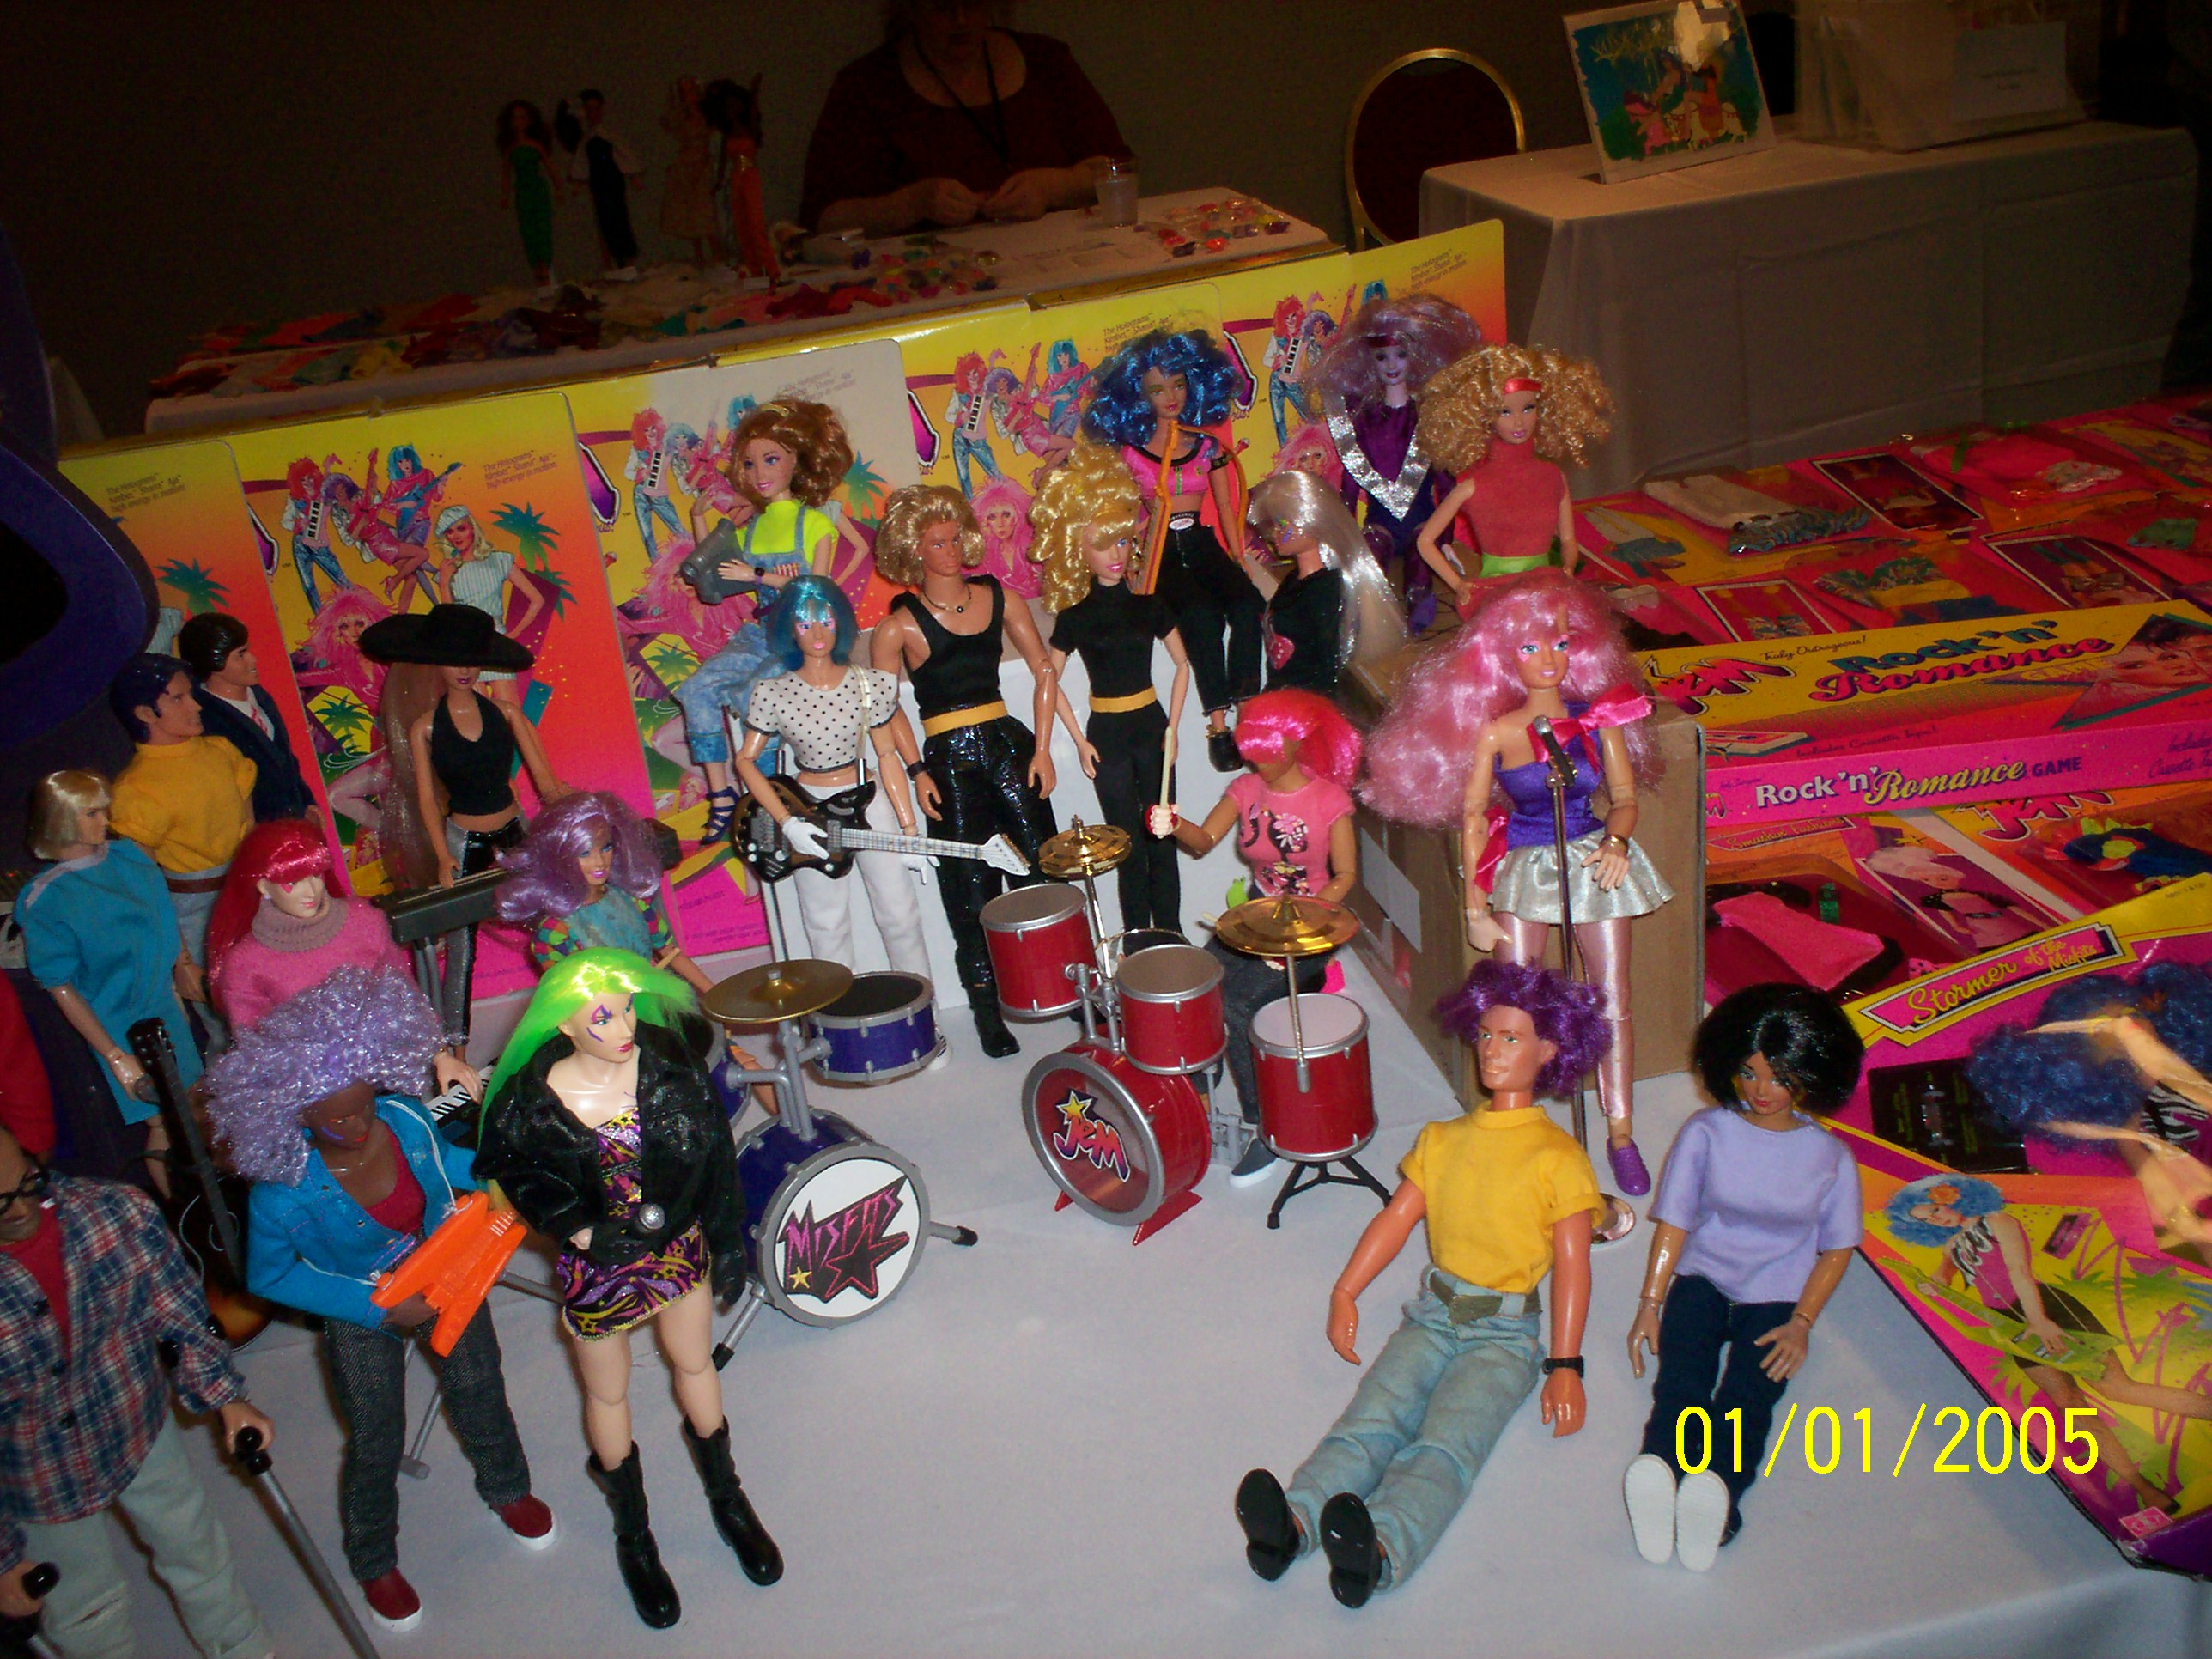 omar4 Glamour, Glitter, and Jemcon: The Truly Outrageous Fans of Jem and the Holograms Part 2